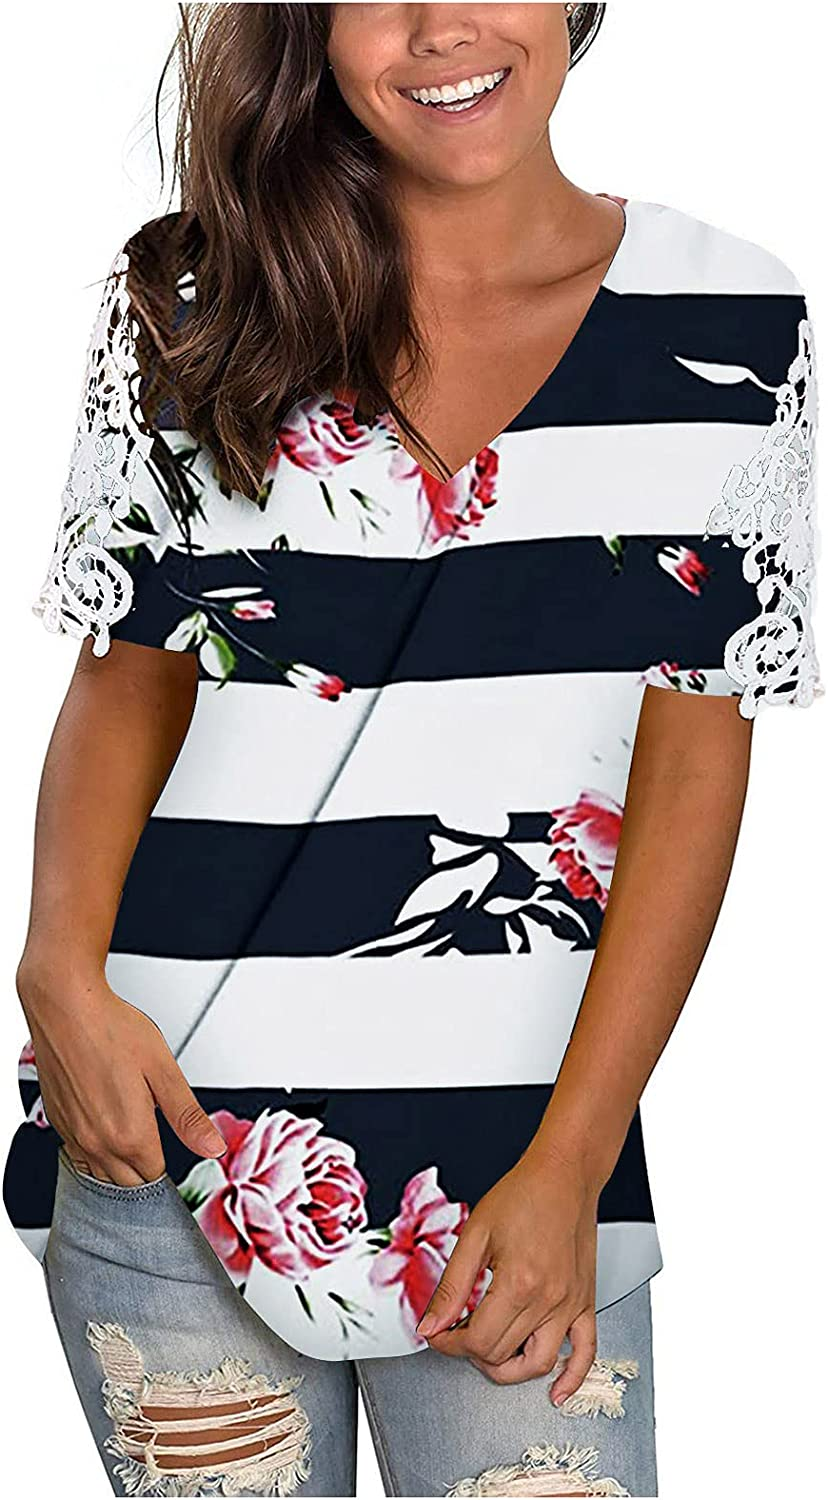 siilsaa Women's Summer Tops, Women's Casual Floral V-Neck Short Sleeve T-Shirts Plus Size Tops Blouse Basic Tunic Tee